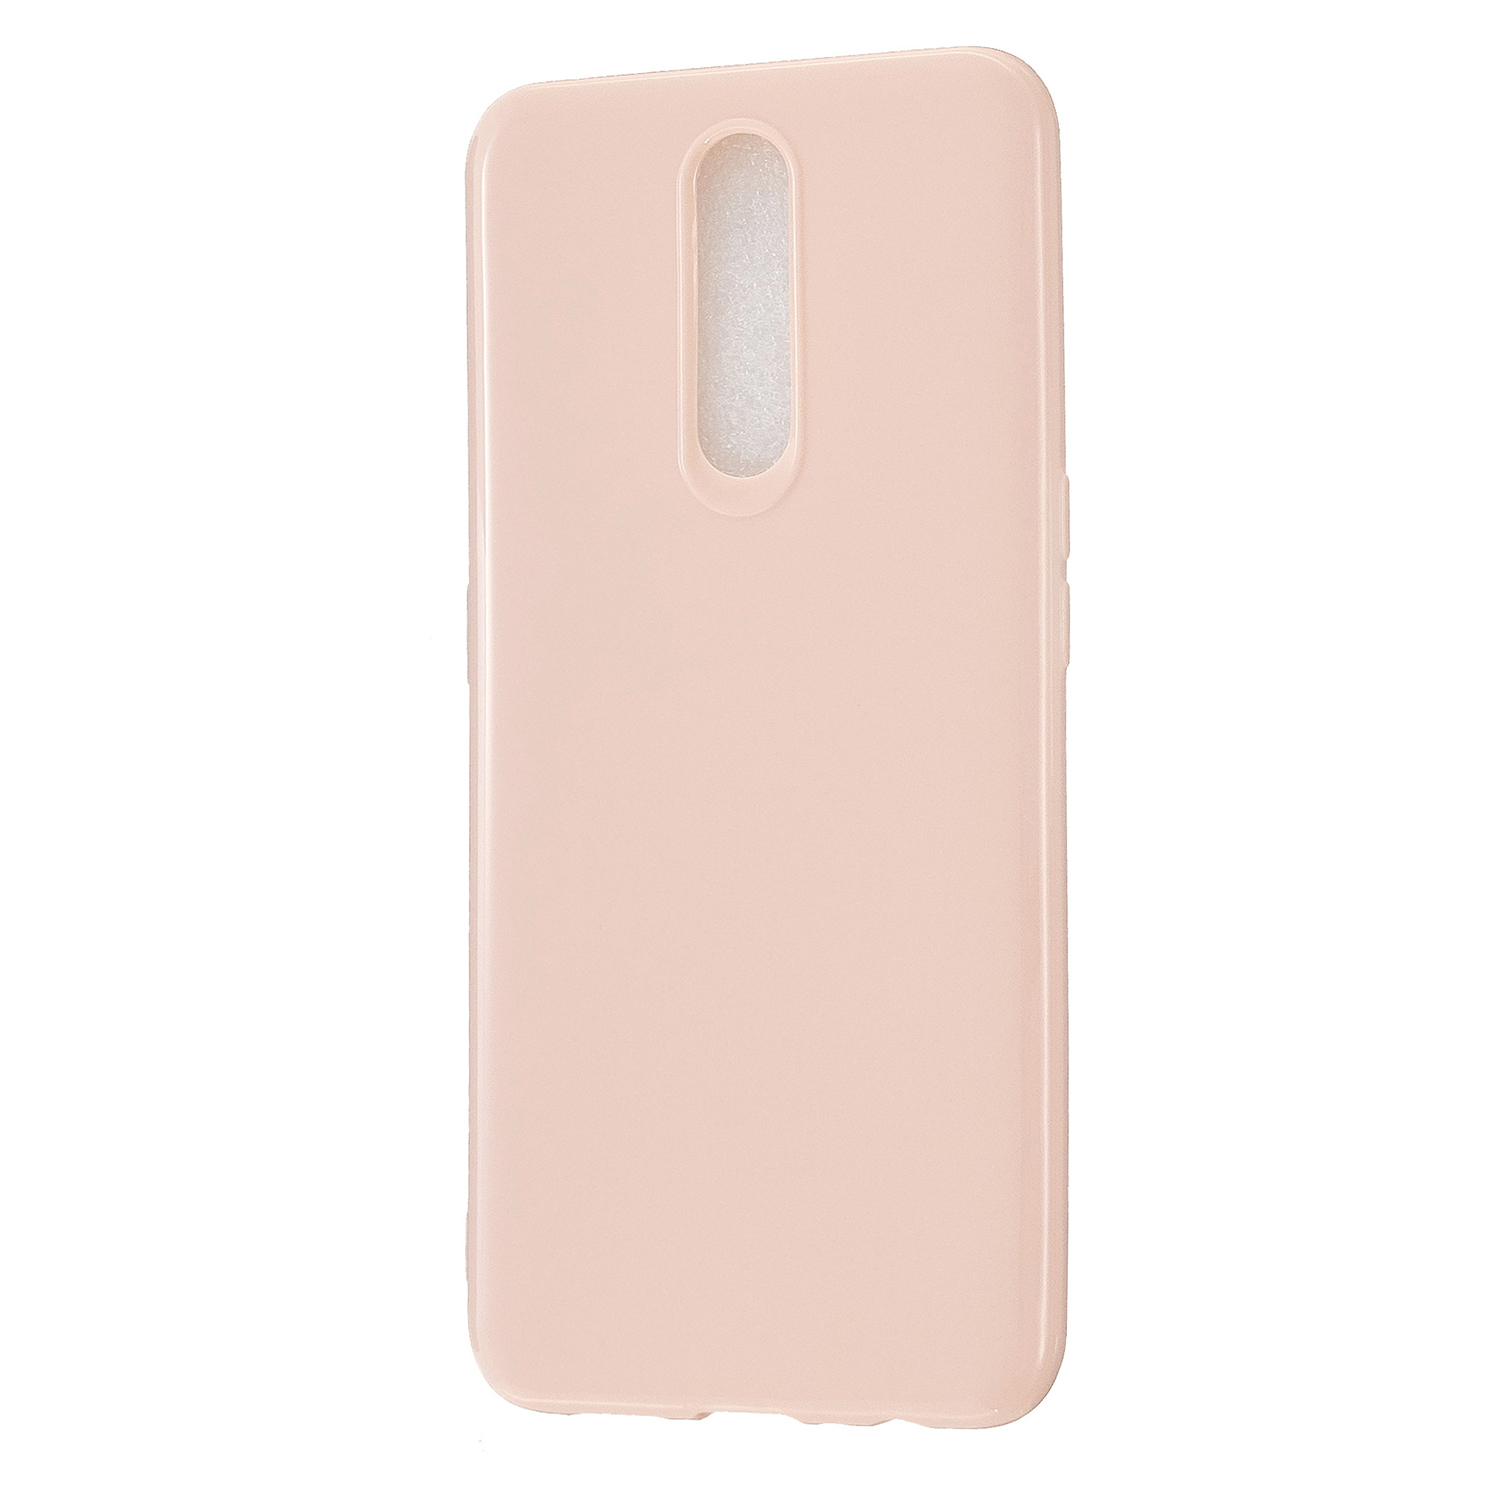 For OPPO F11/F11 Pro Cellphone Cover Glossy TPU Simple Profile Bumper Protective Mobile Phone Case Sakura pink